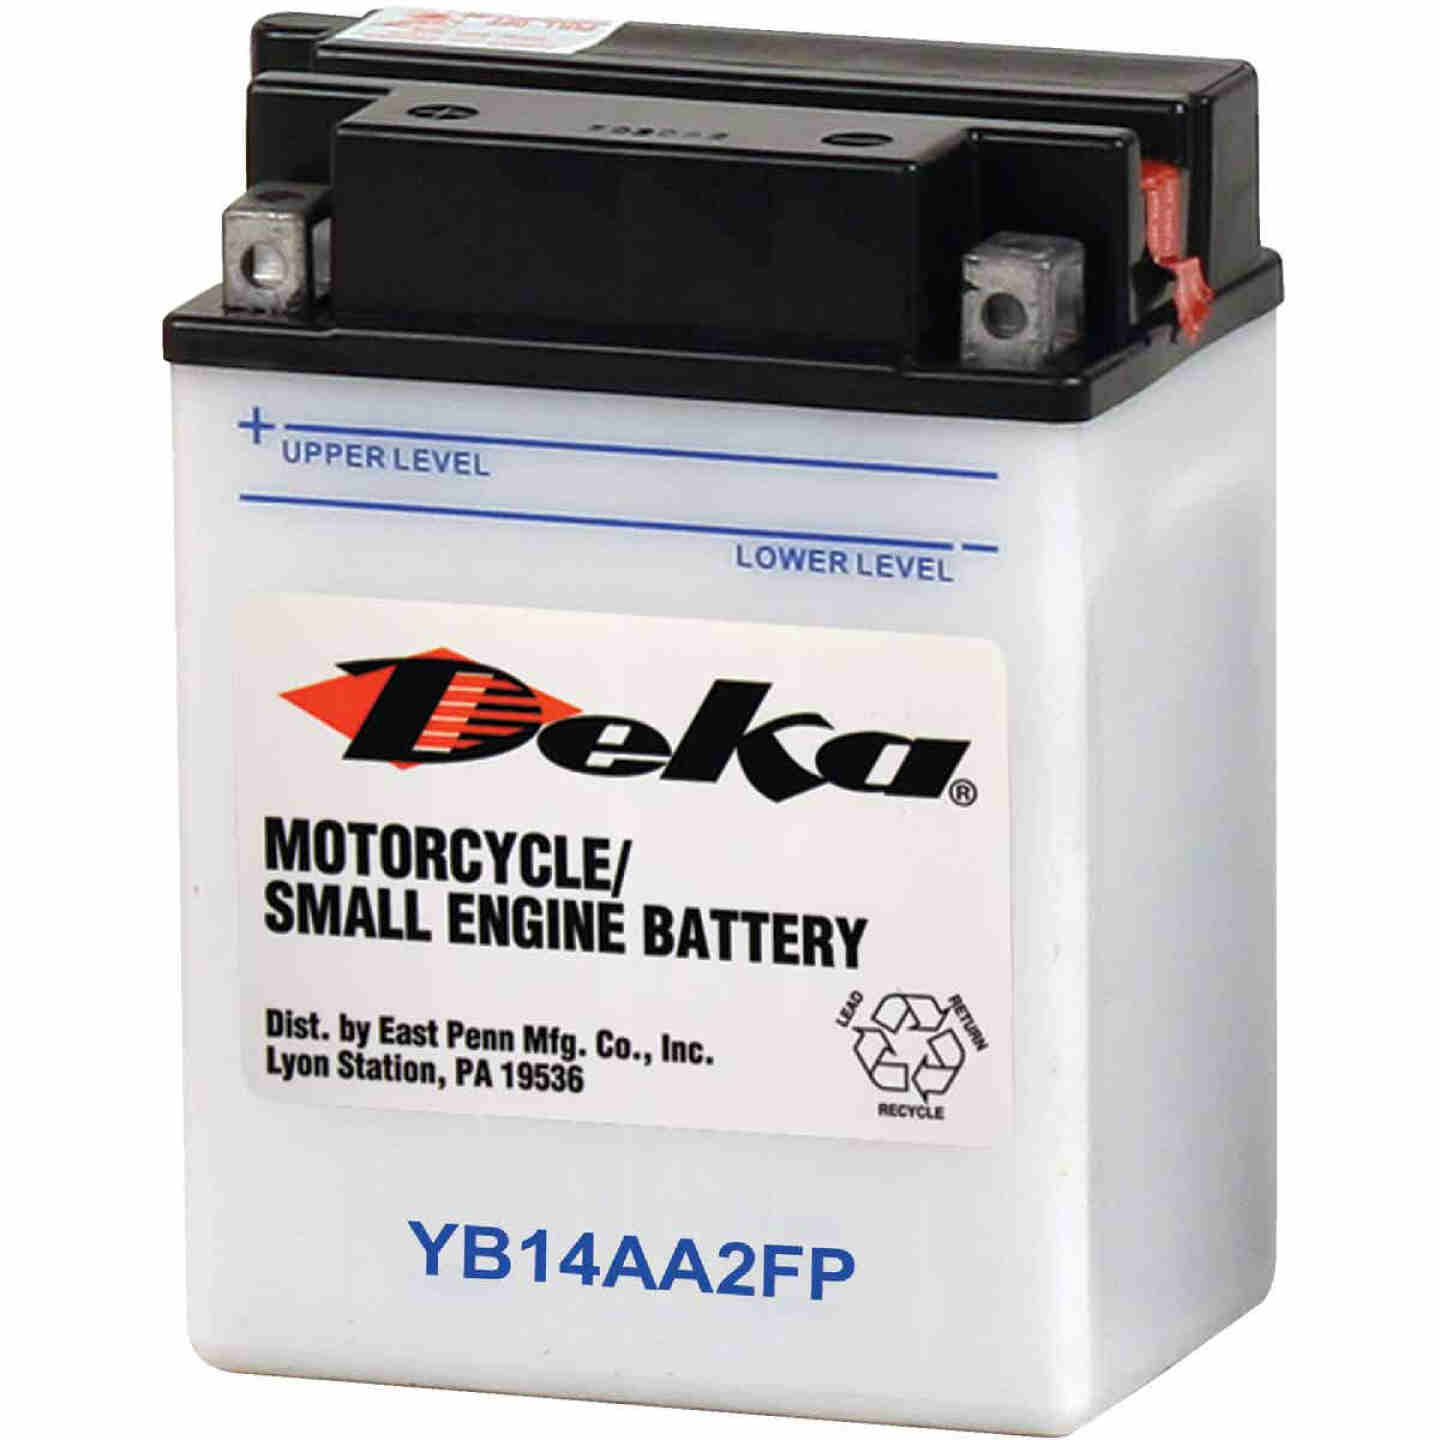 Deka 12-Volt 190 CCA Powersport Battery, Left Front Positive Terminal Image 1